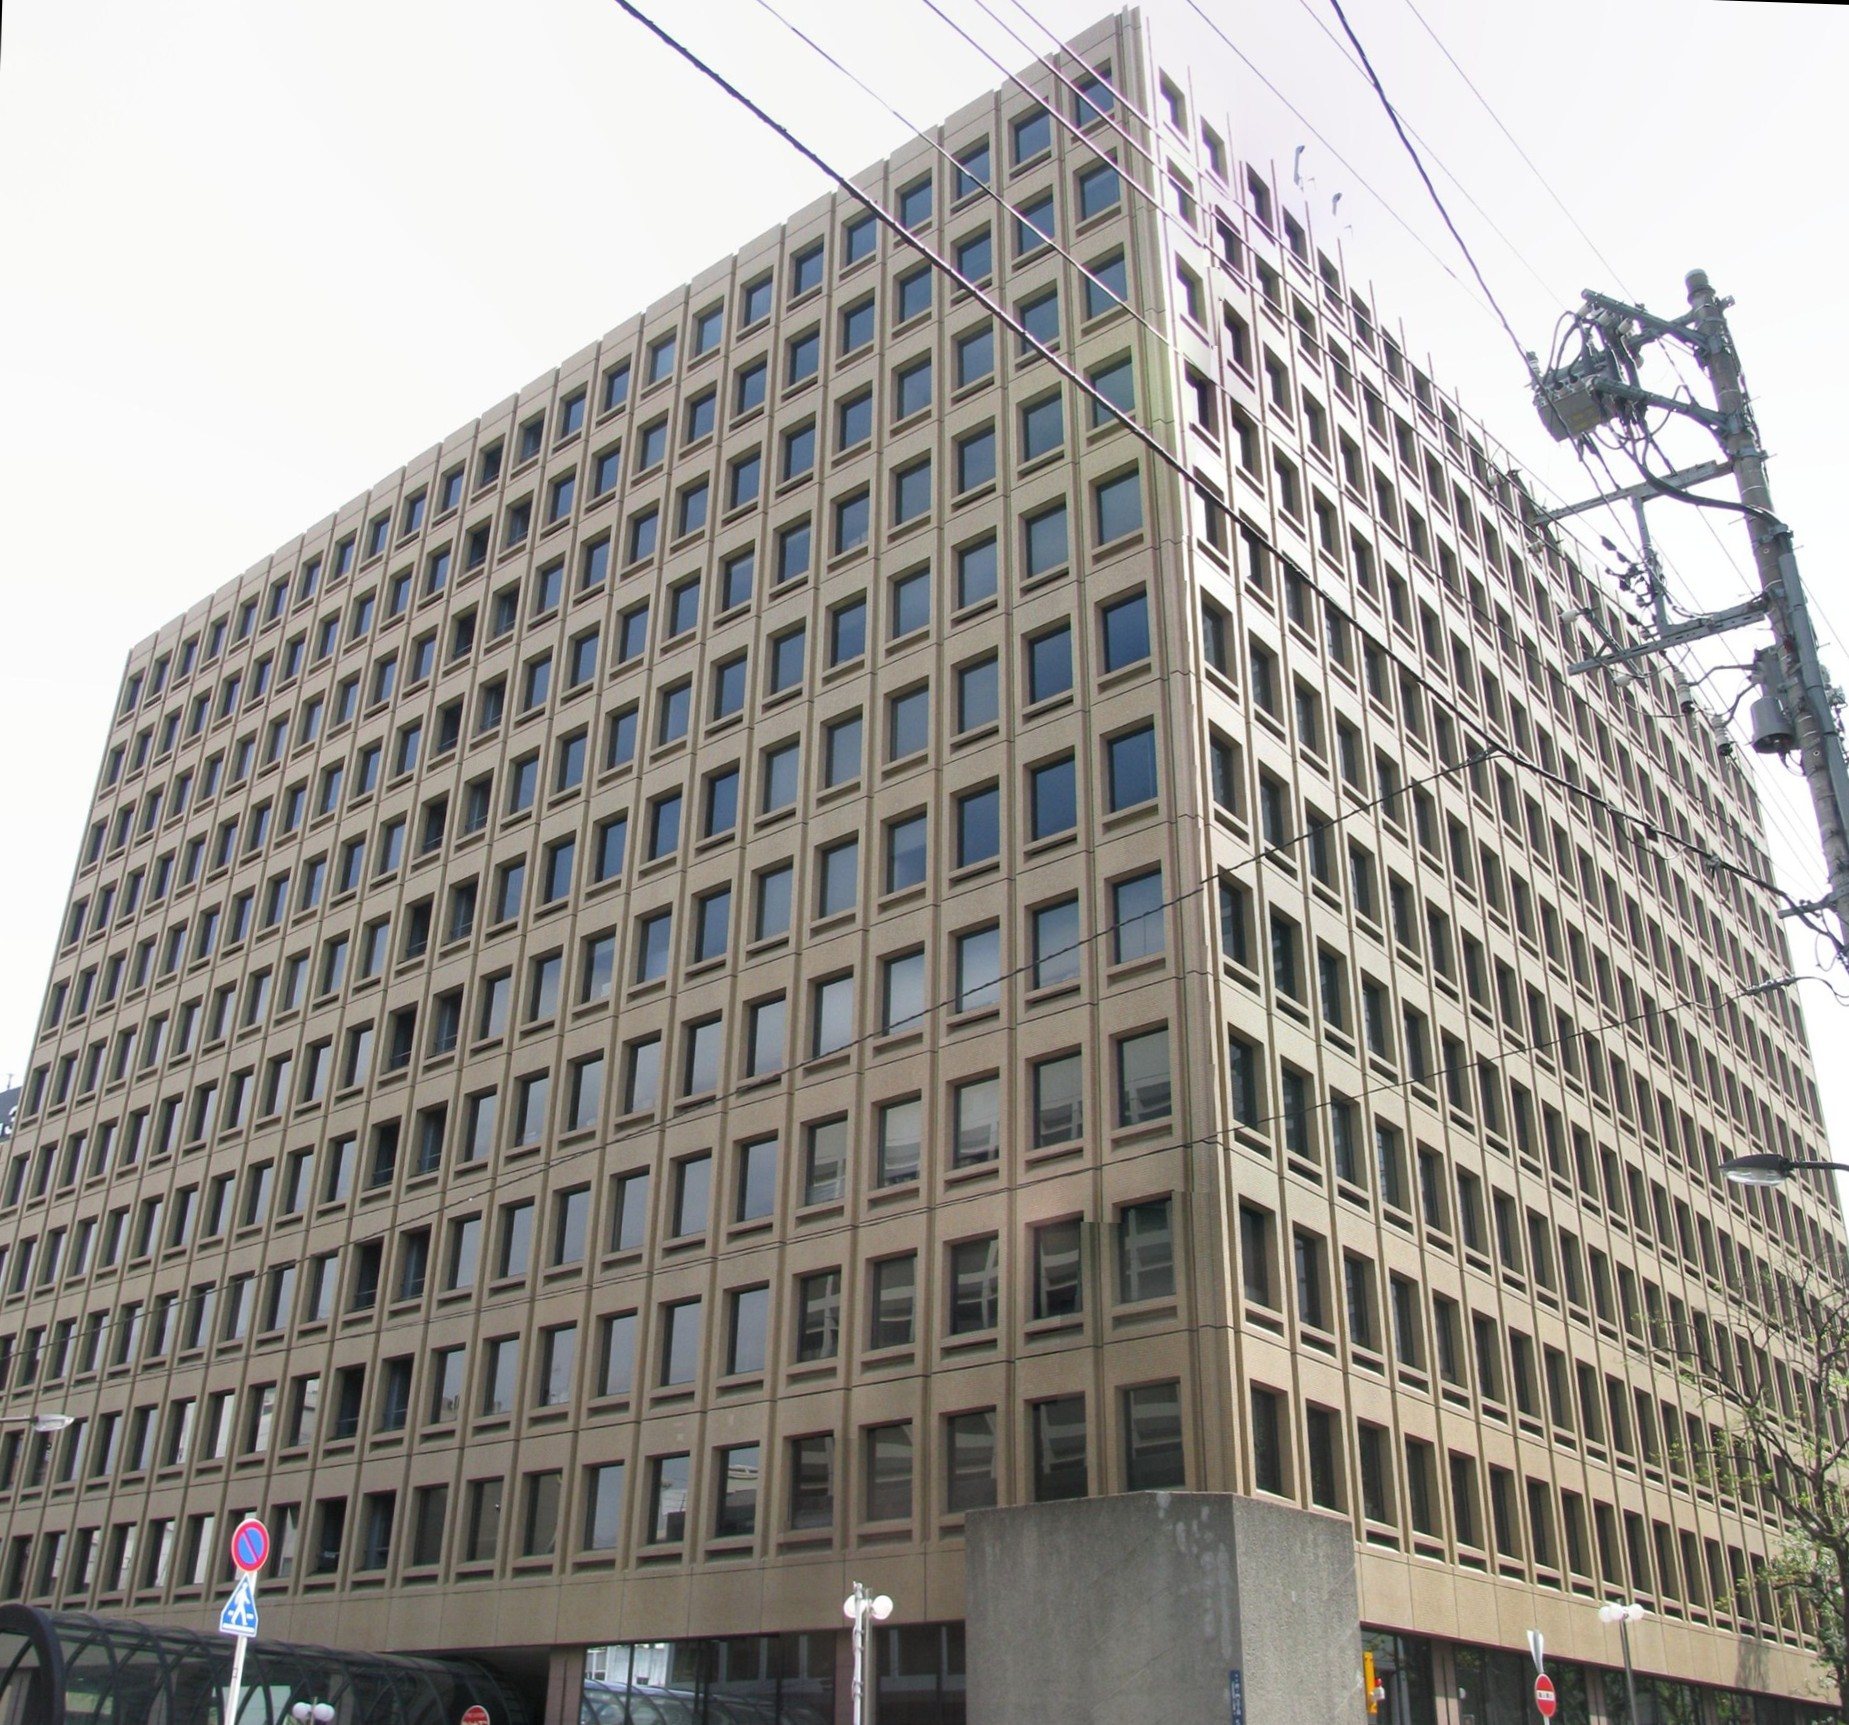 https://upload.wikimedia.org/wikipedia/commons/0/06/Mori_Building_37_-01.jpg